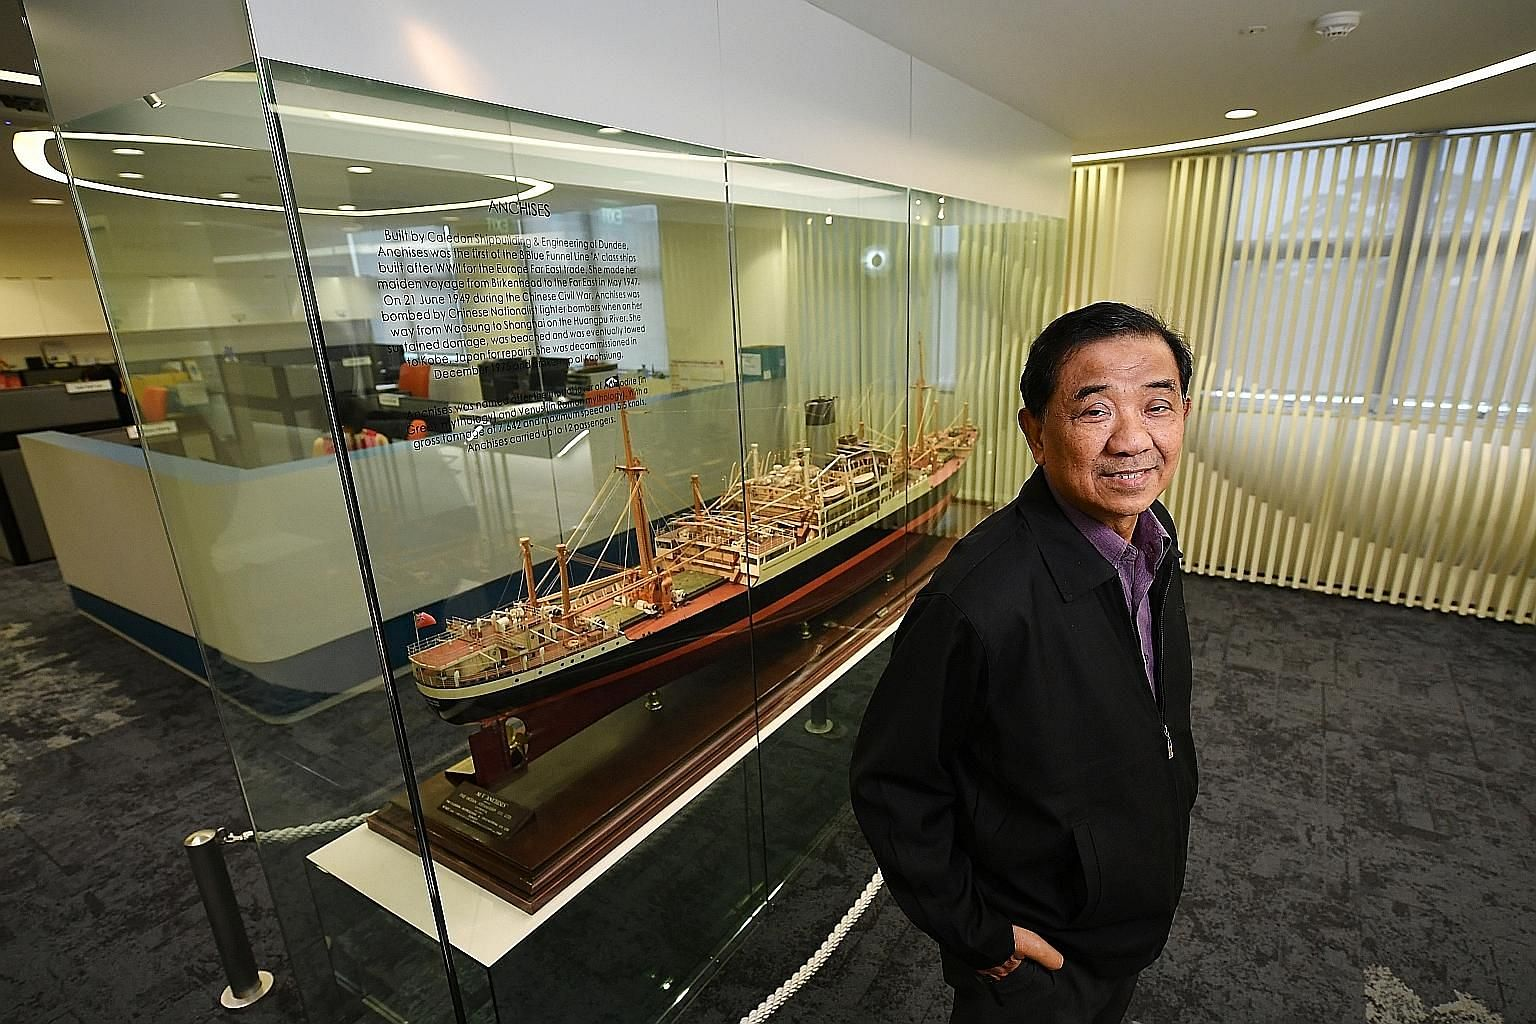 After a decade out at sea, Mr Rosli joined Jurong Shipyard (above) as a dockmaster for two years, before joining Singapore Polytechnic as a nautical studies lecturer. ST FILE PHOTO Mr Rosli Ridzwan with a model of the M.V. Anchises, a general cargo s